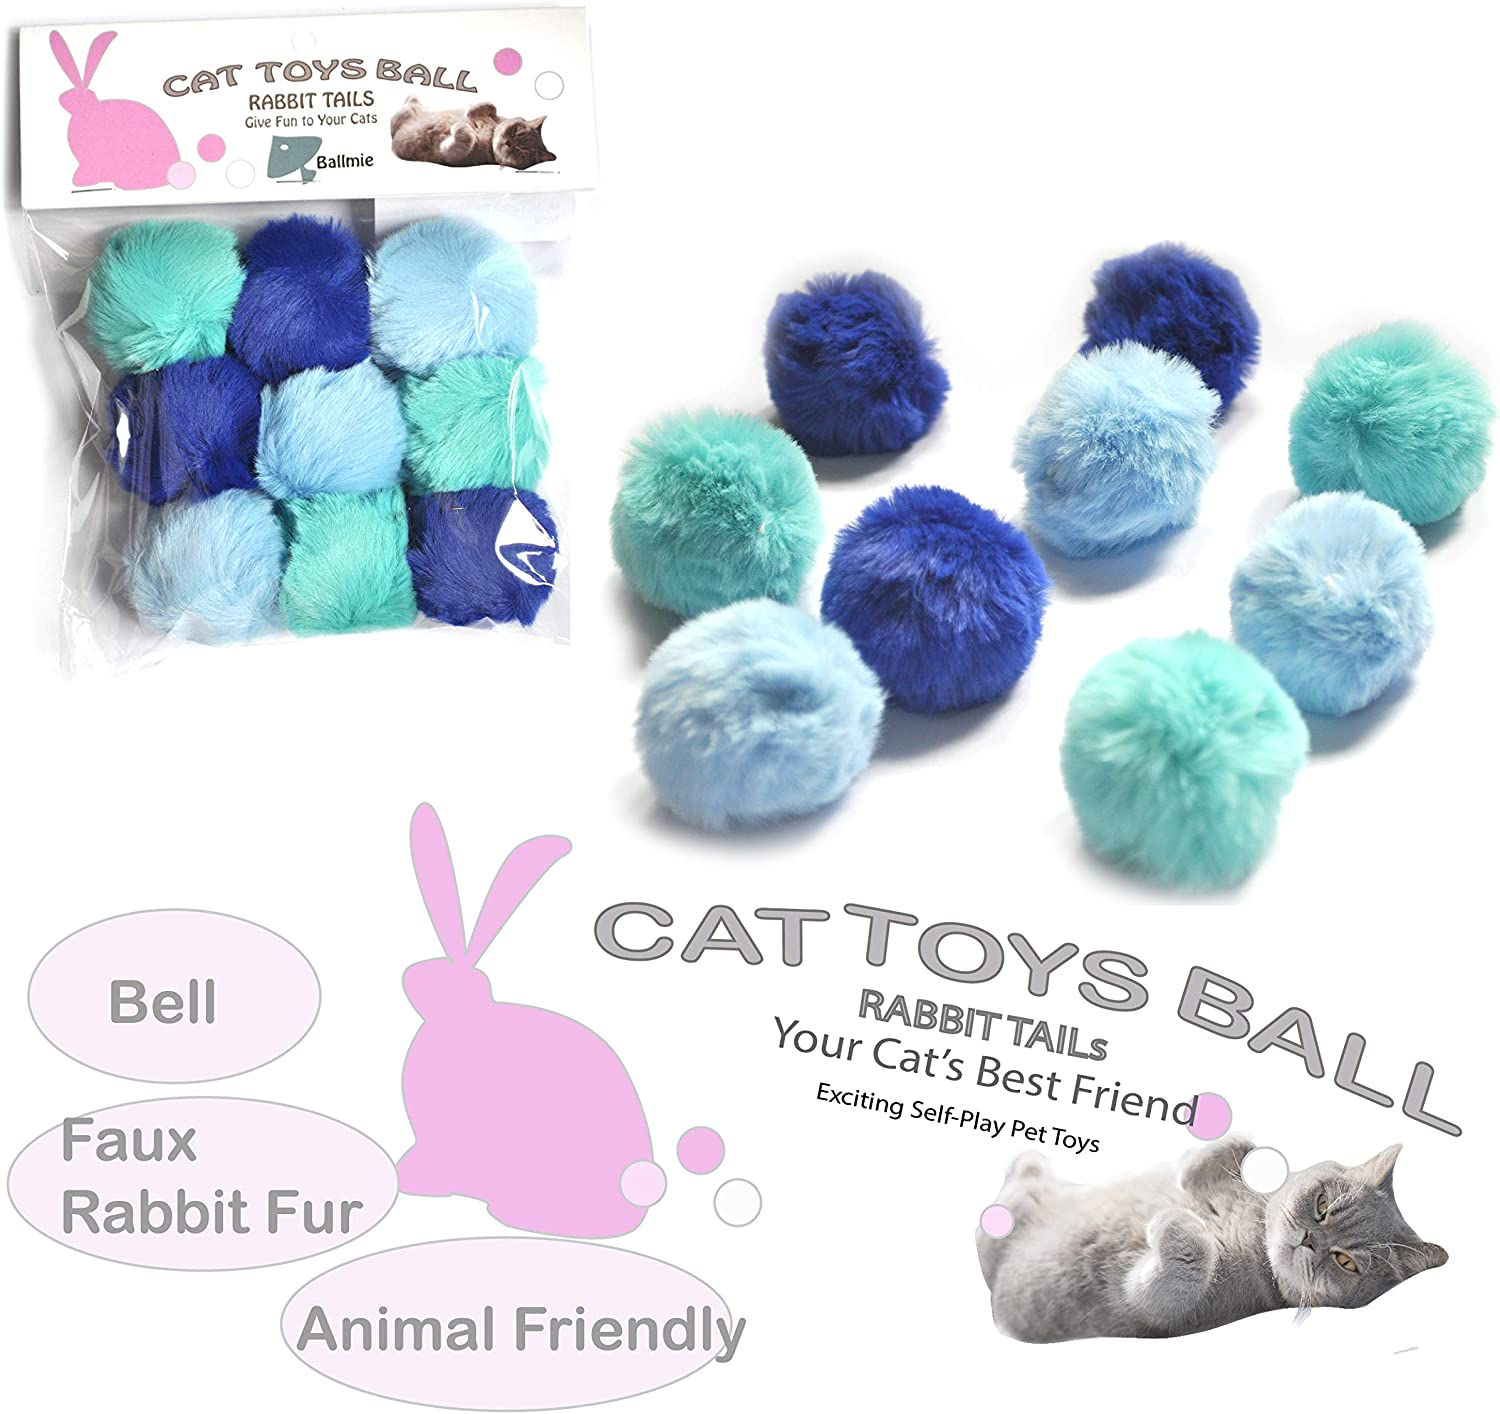 BALLMIE Cat Toys Ball Furry Ball with Rattle Bell Catnip for Cats Easter Gift